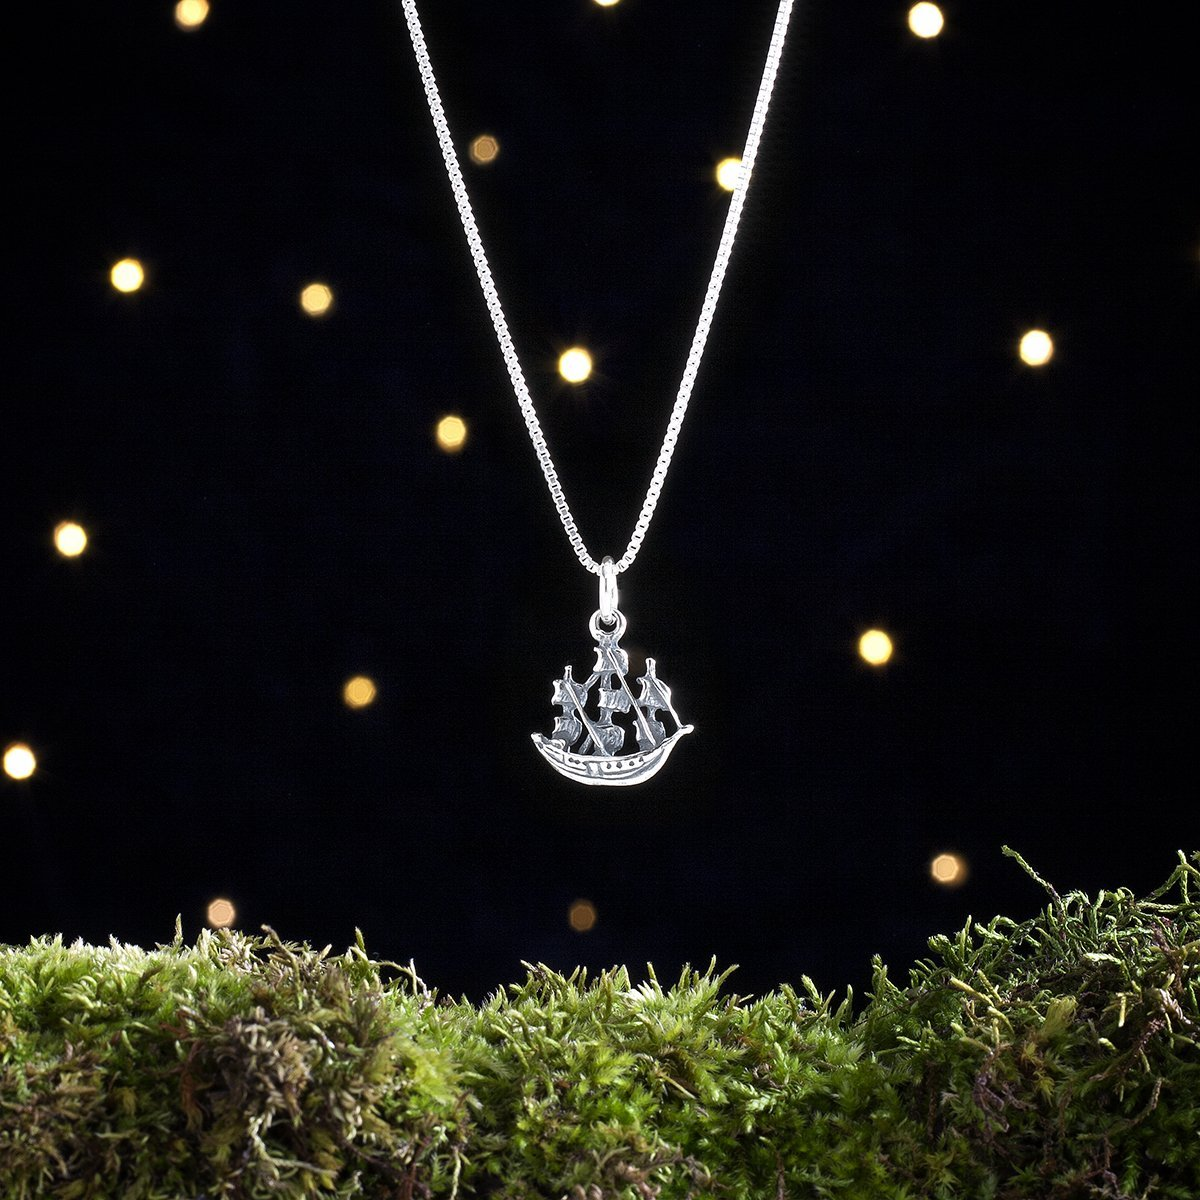 Sterling Silver Pirate Ship - Small, 3D Double Sided - (Charm Only or Necklace)